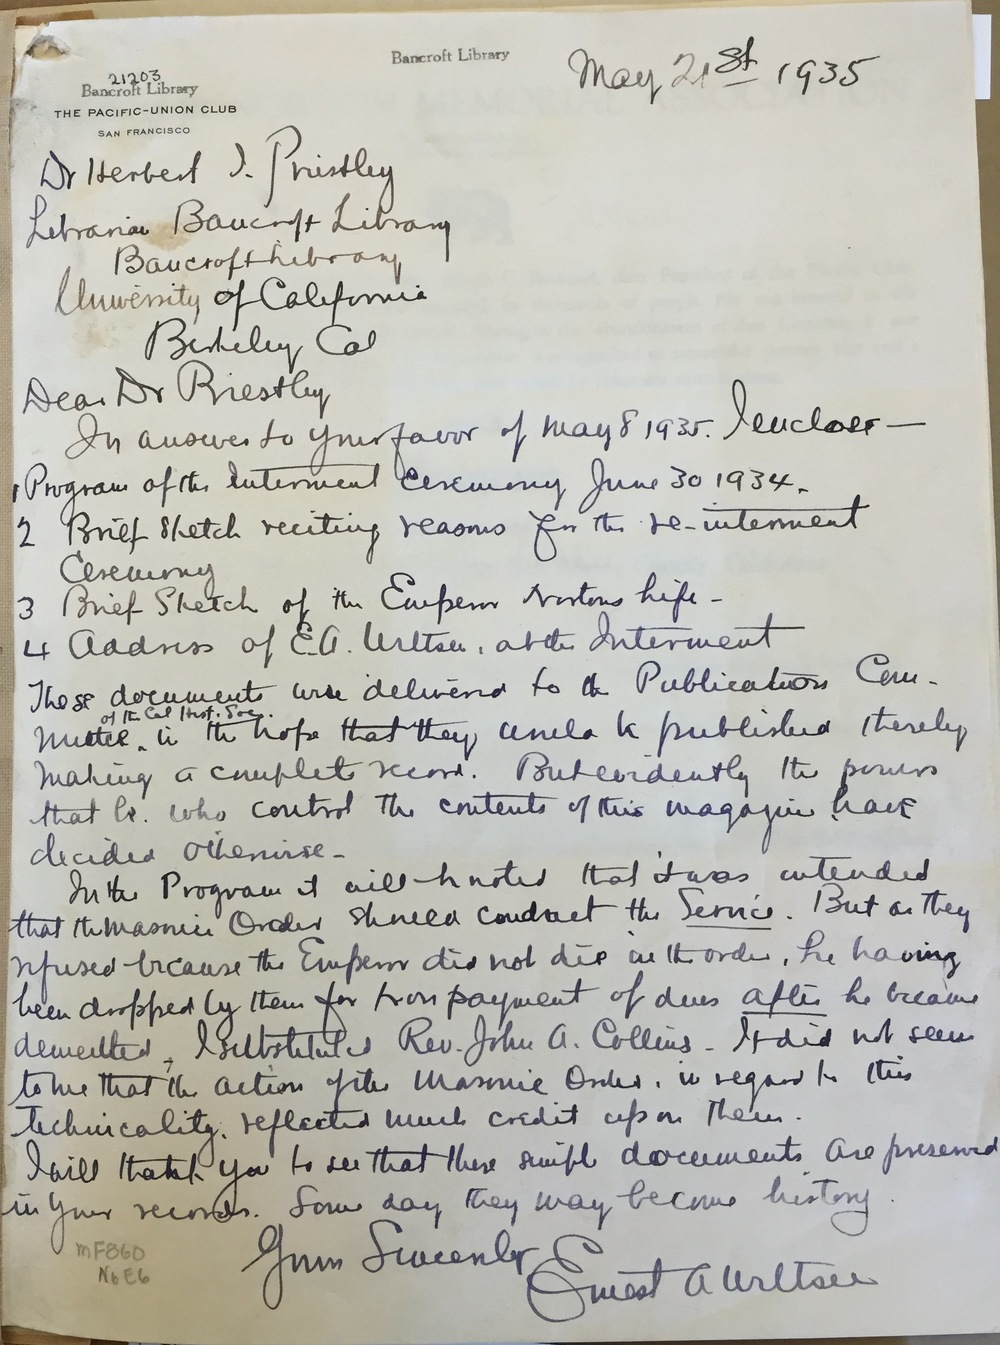 Letter from Ernest Wiltsee, president of the Emperor Norton Memorial Association, to Herbert Priestley, Librarian of the Bancroft Library at the University of California, Berkeley, 21 May 1935. Included in the Ernest A. Wiltsee Papers at the Bancroft Library. Photo by Joseph Amster. Published by permission of the Bancroft Library.